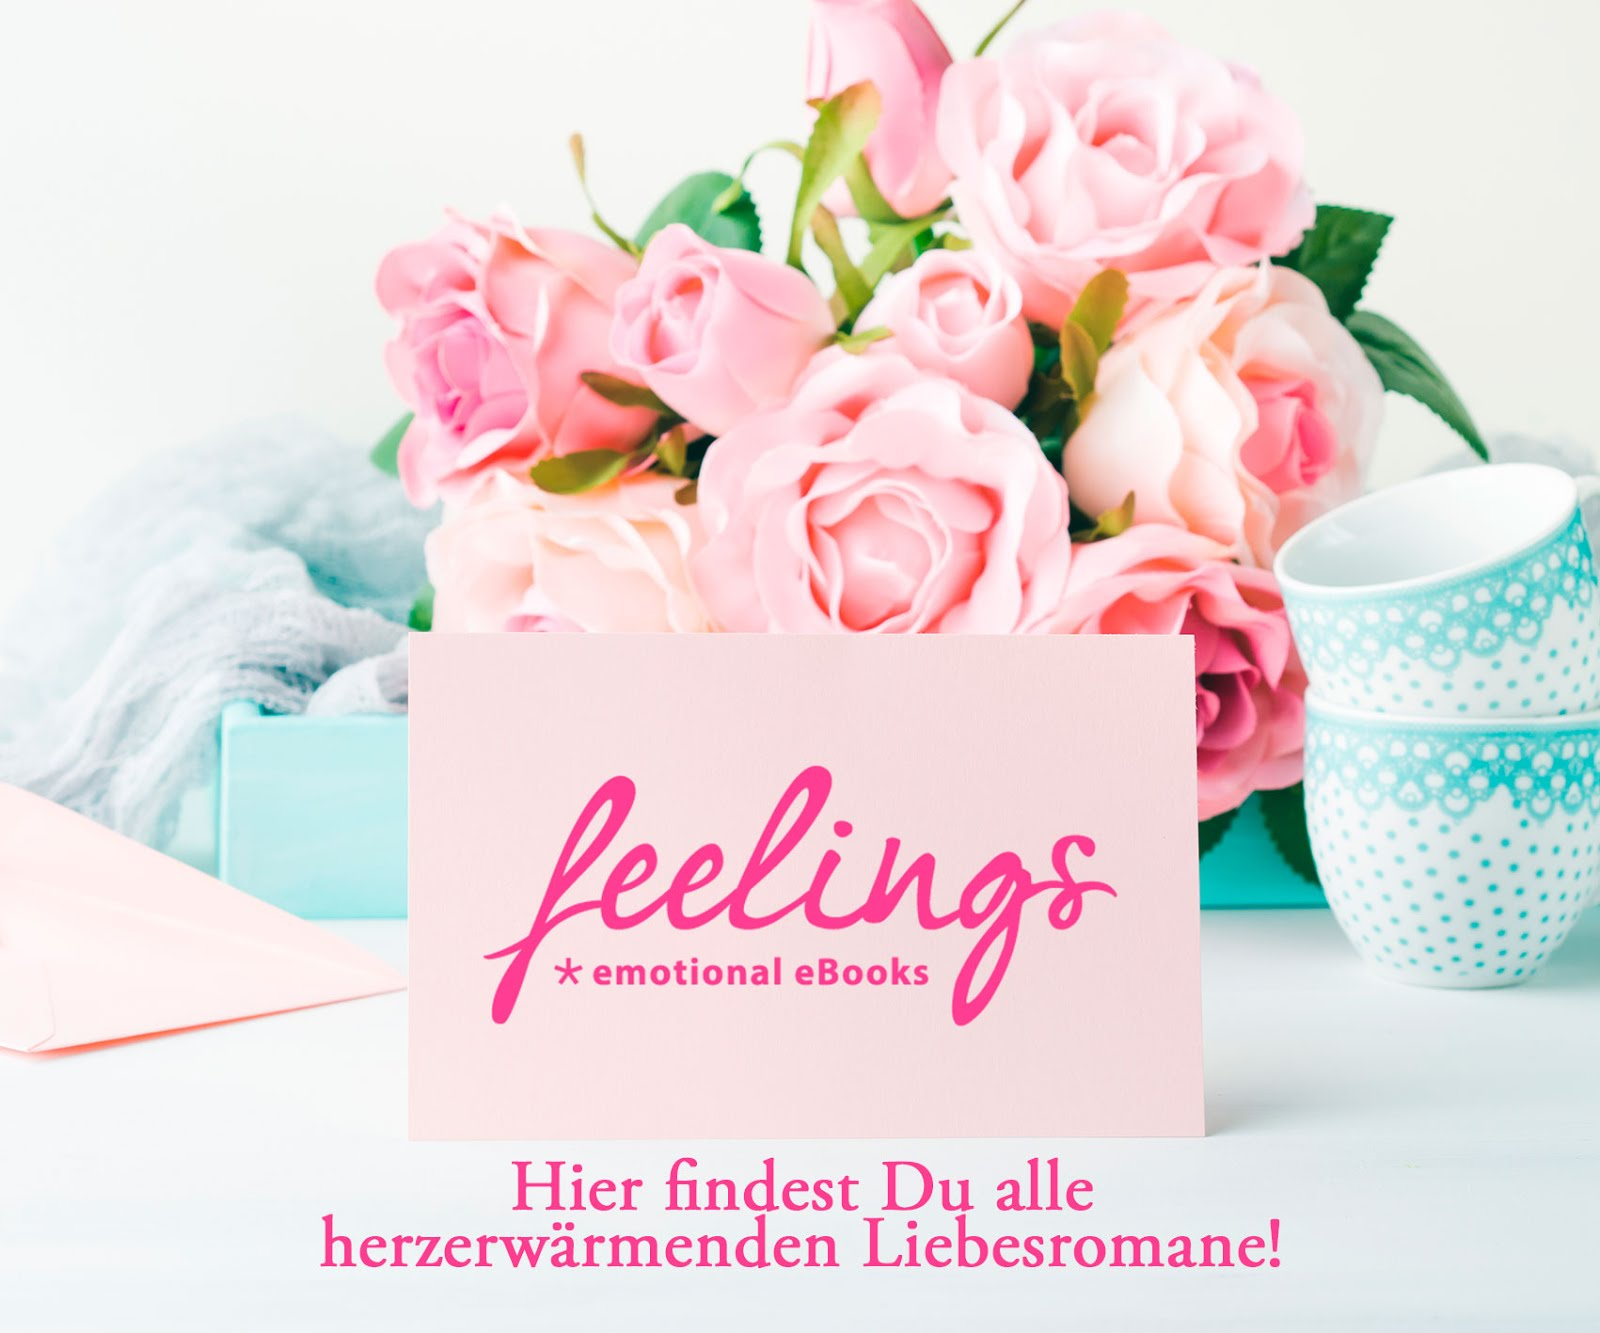 Feelings Werbung